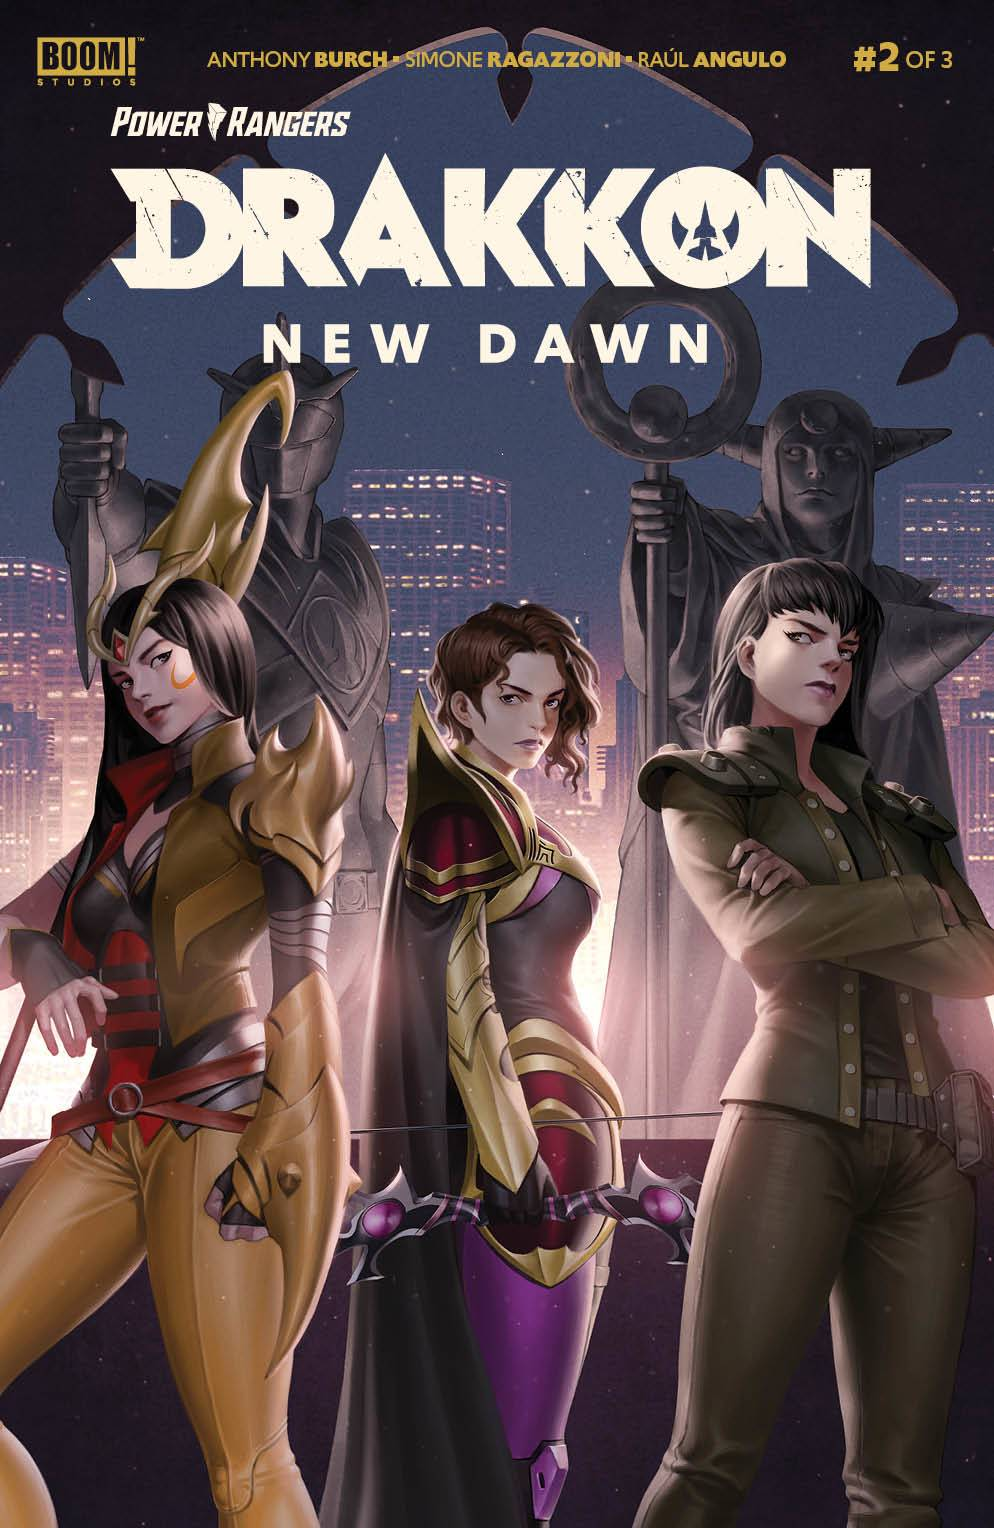 Power Rangers Drakkon New Dawn #2